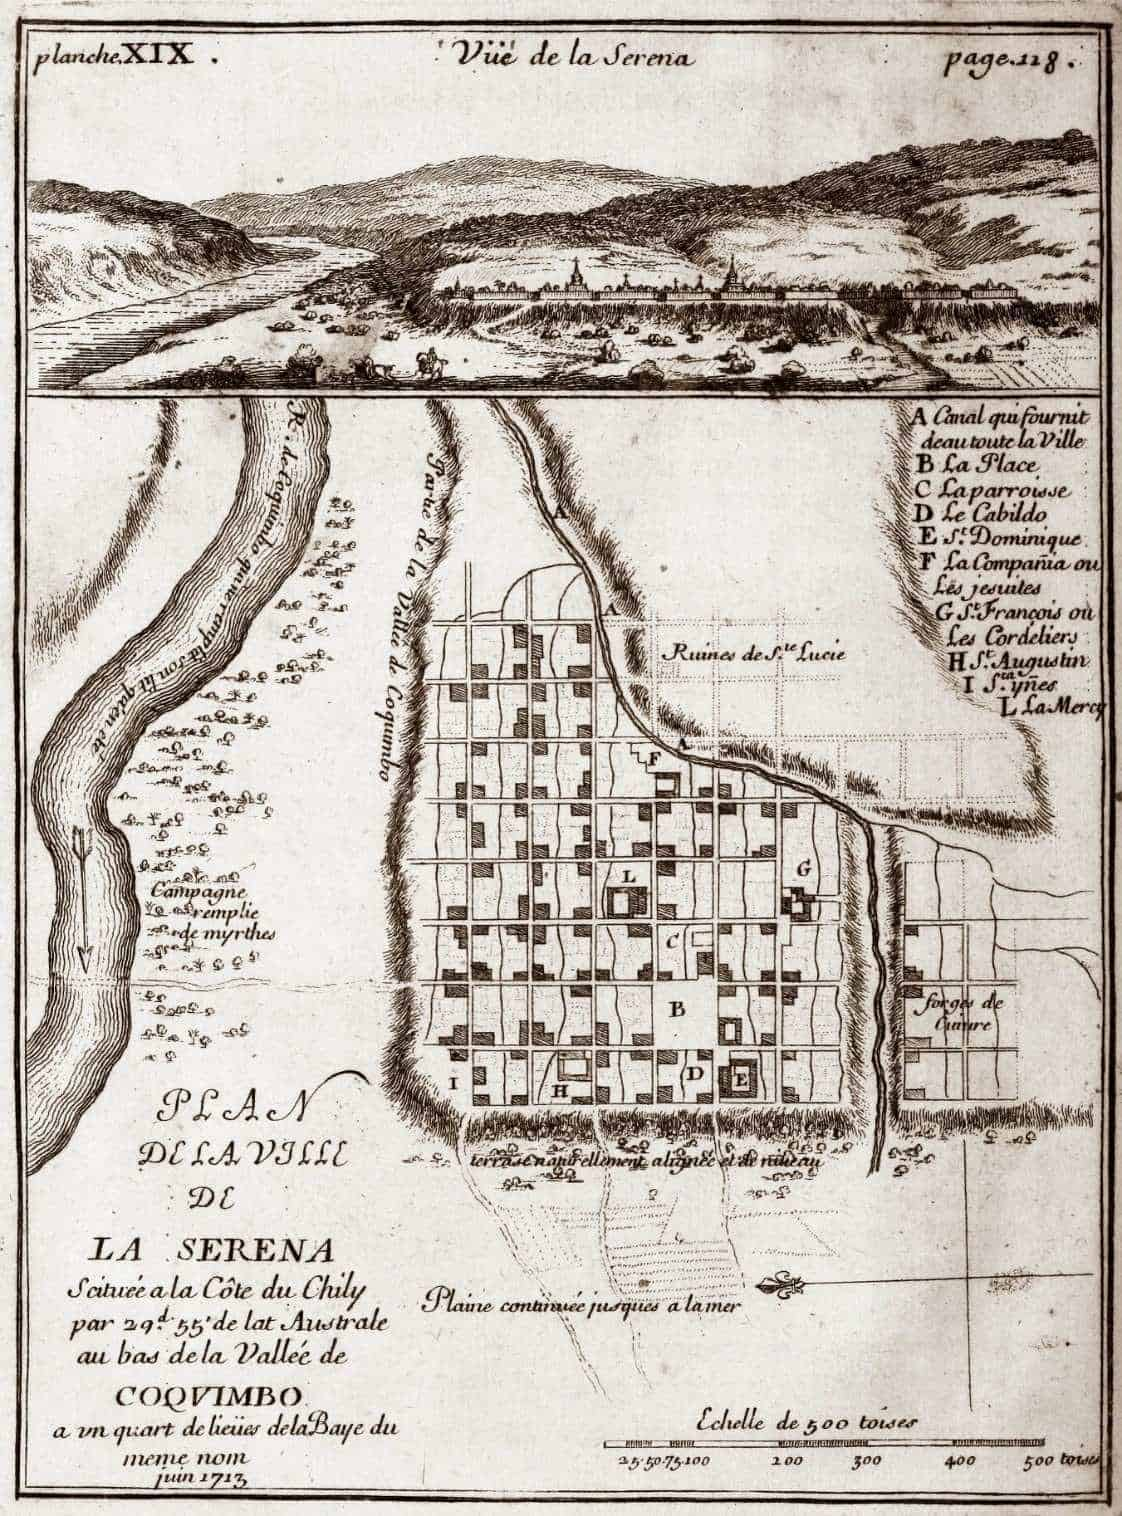 La Serena profile and plan in the early eighteenth century, showing the abandoned Santa Lucia quarter destroyed by pirates.